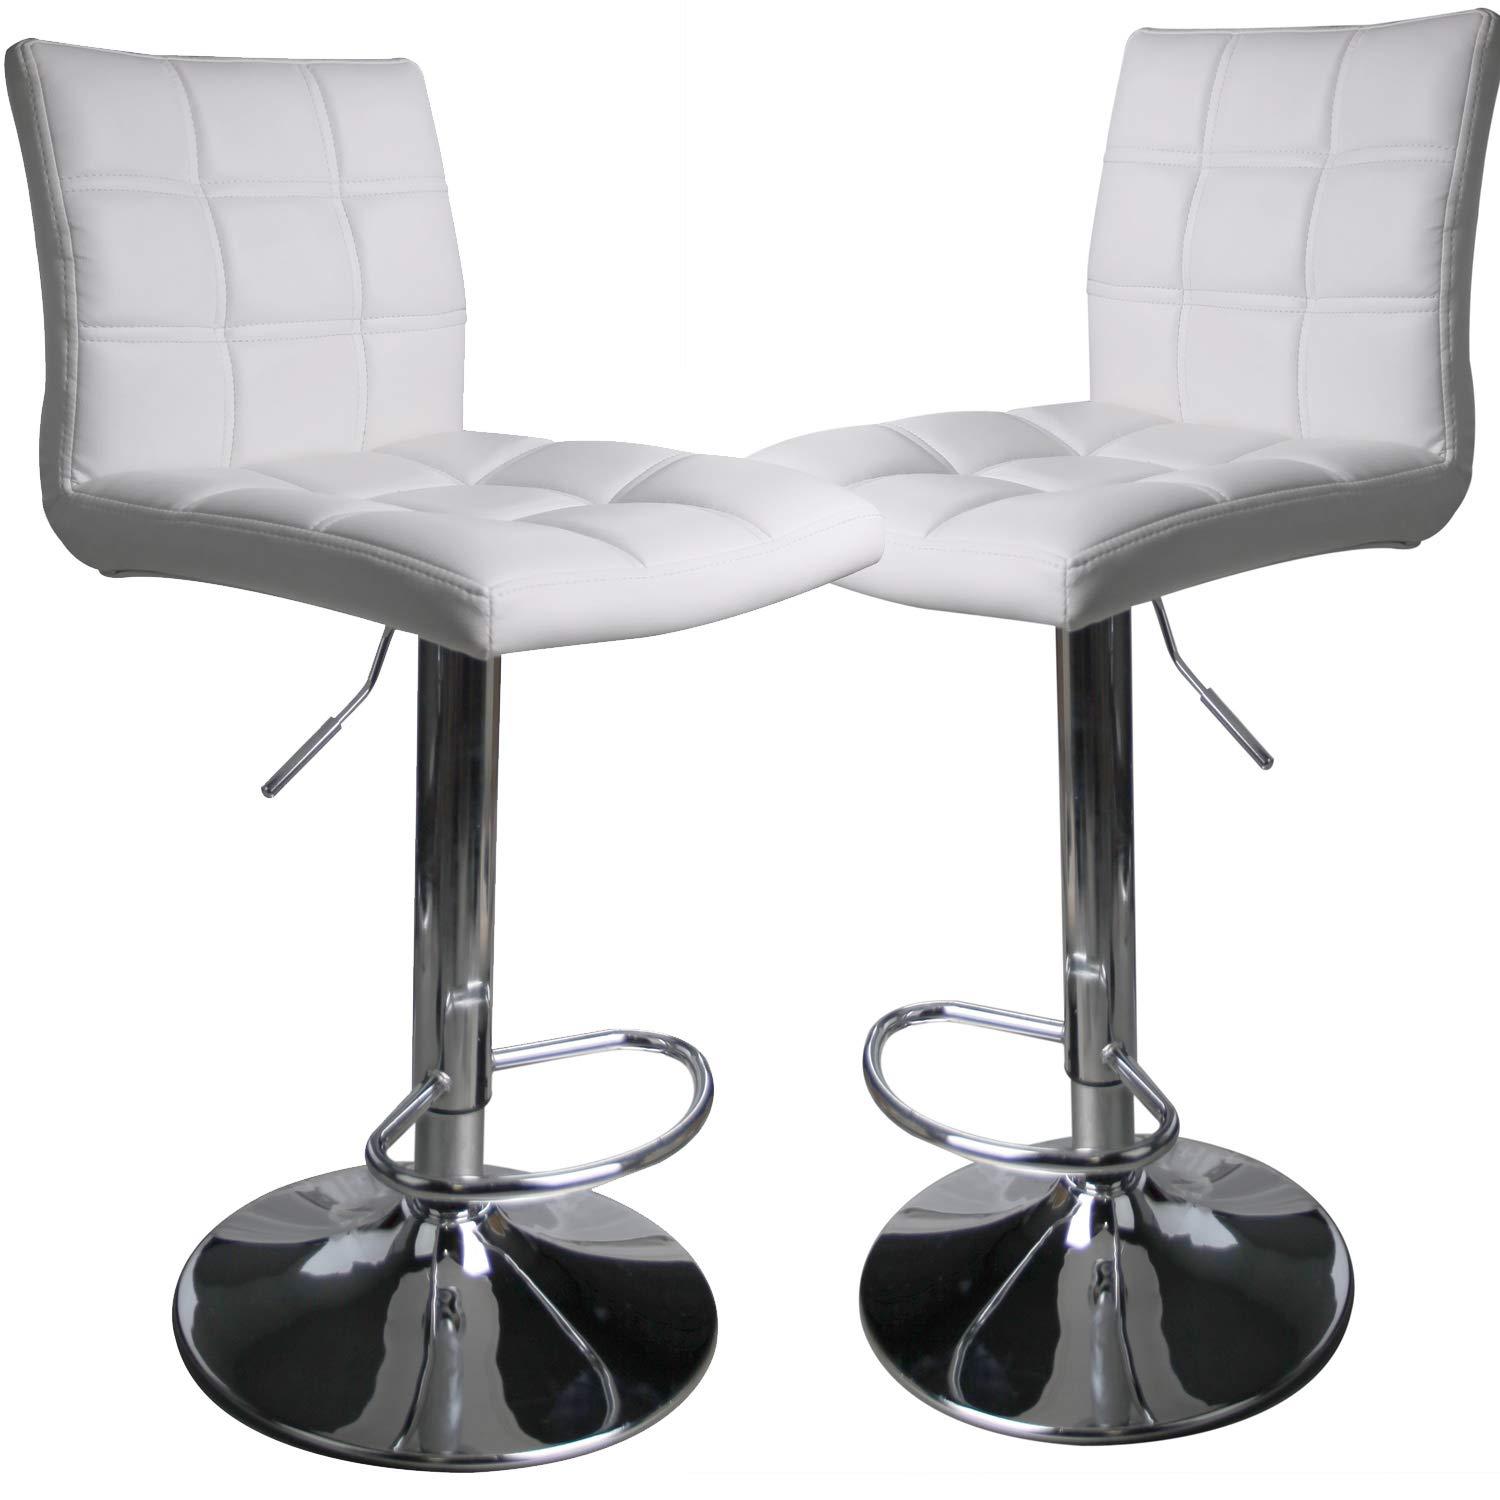 Leader Modern Square Back Bar Stools, Adjustable Swivel Bar Stool Set of 2, Bar Chair with Back (White) by Leader Accessories